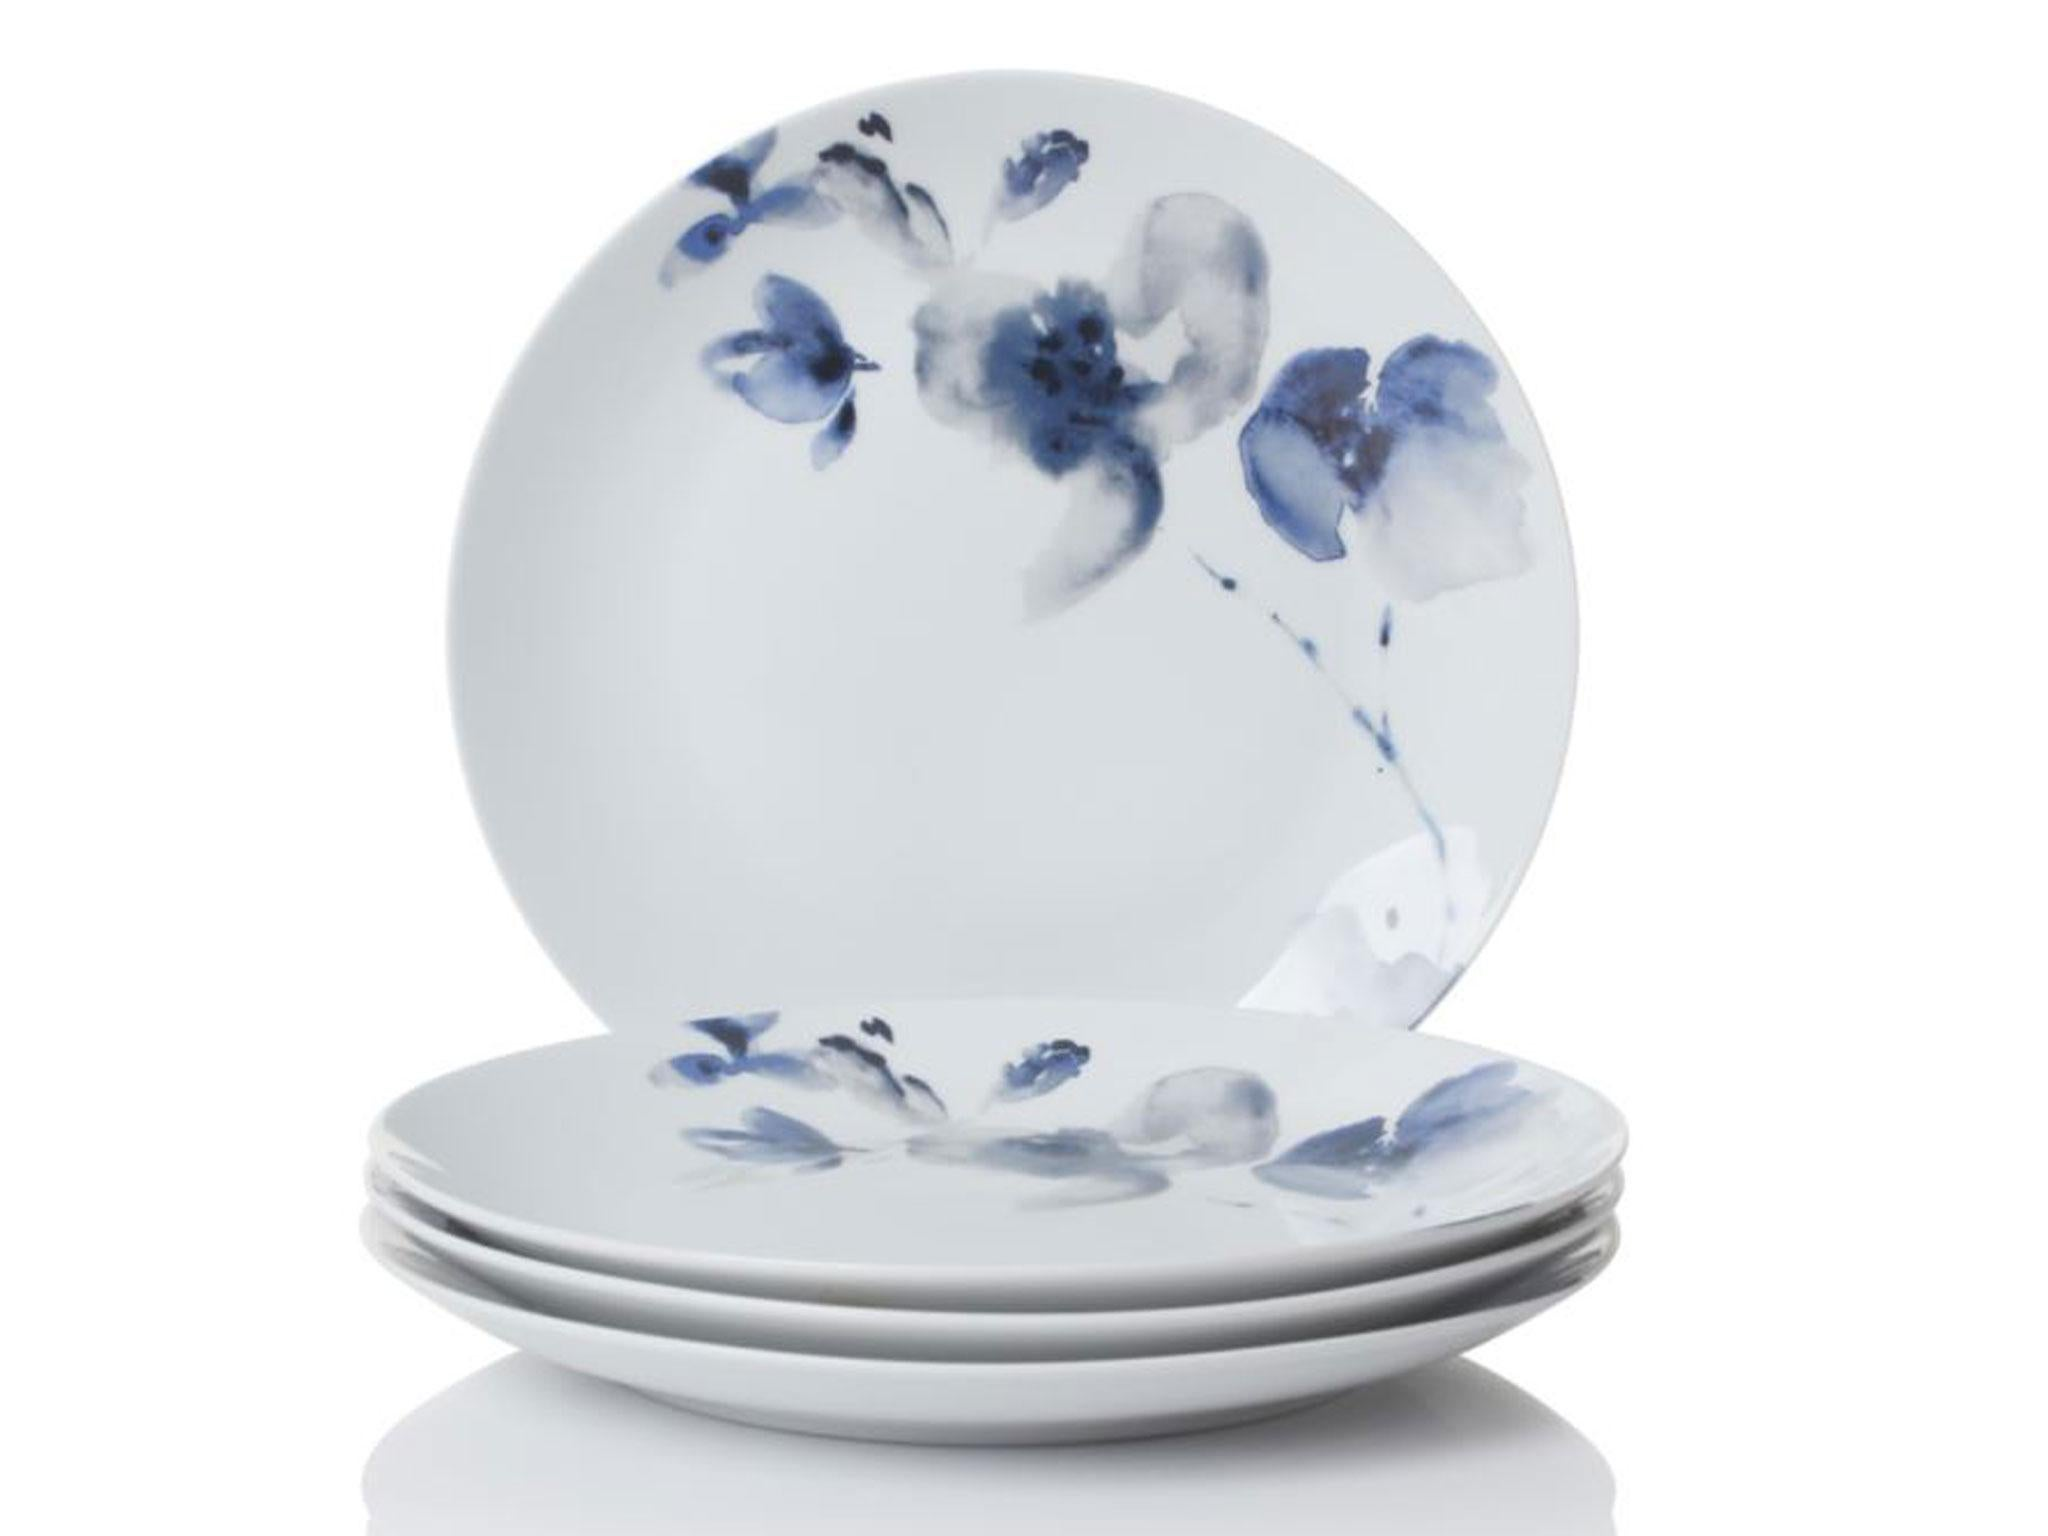 10 best plate sets | The Independent